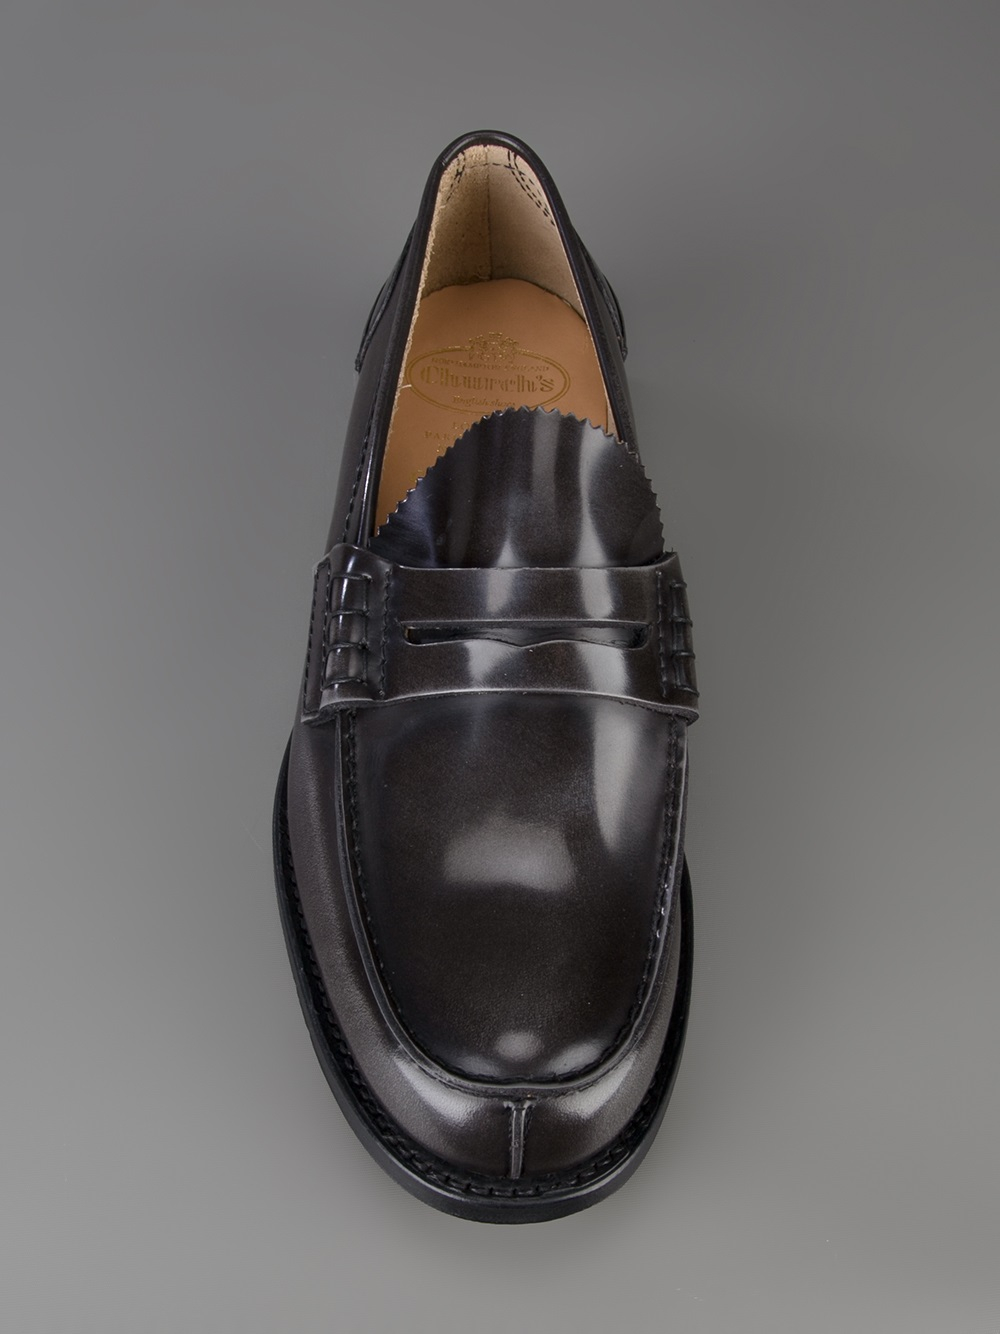 363672a1a09 Lyst - Church s Tunbridge Loafer in Black for Men